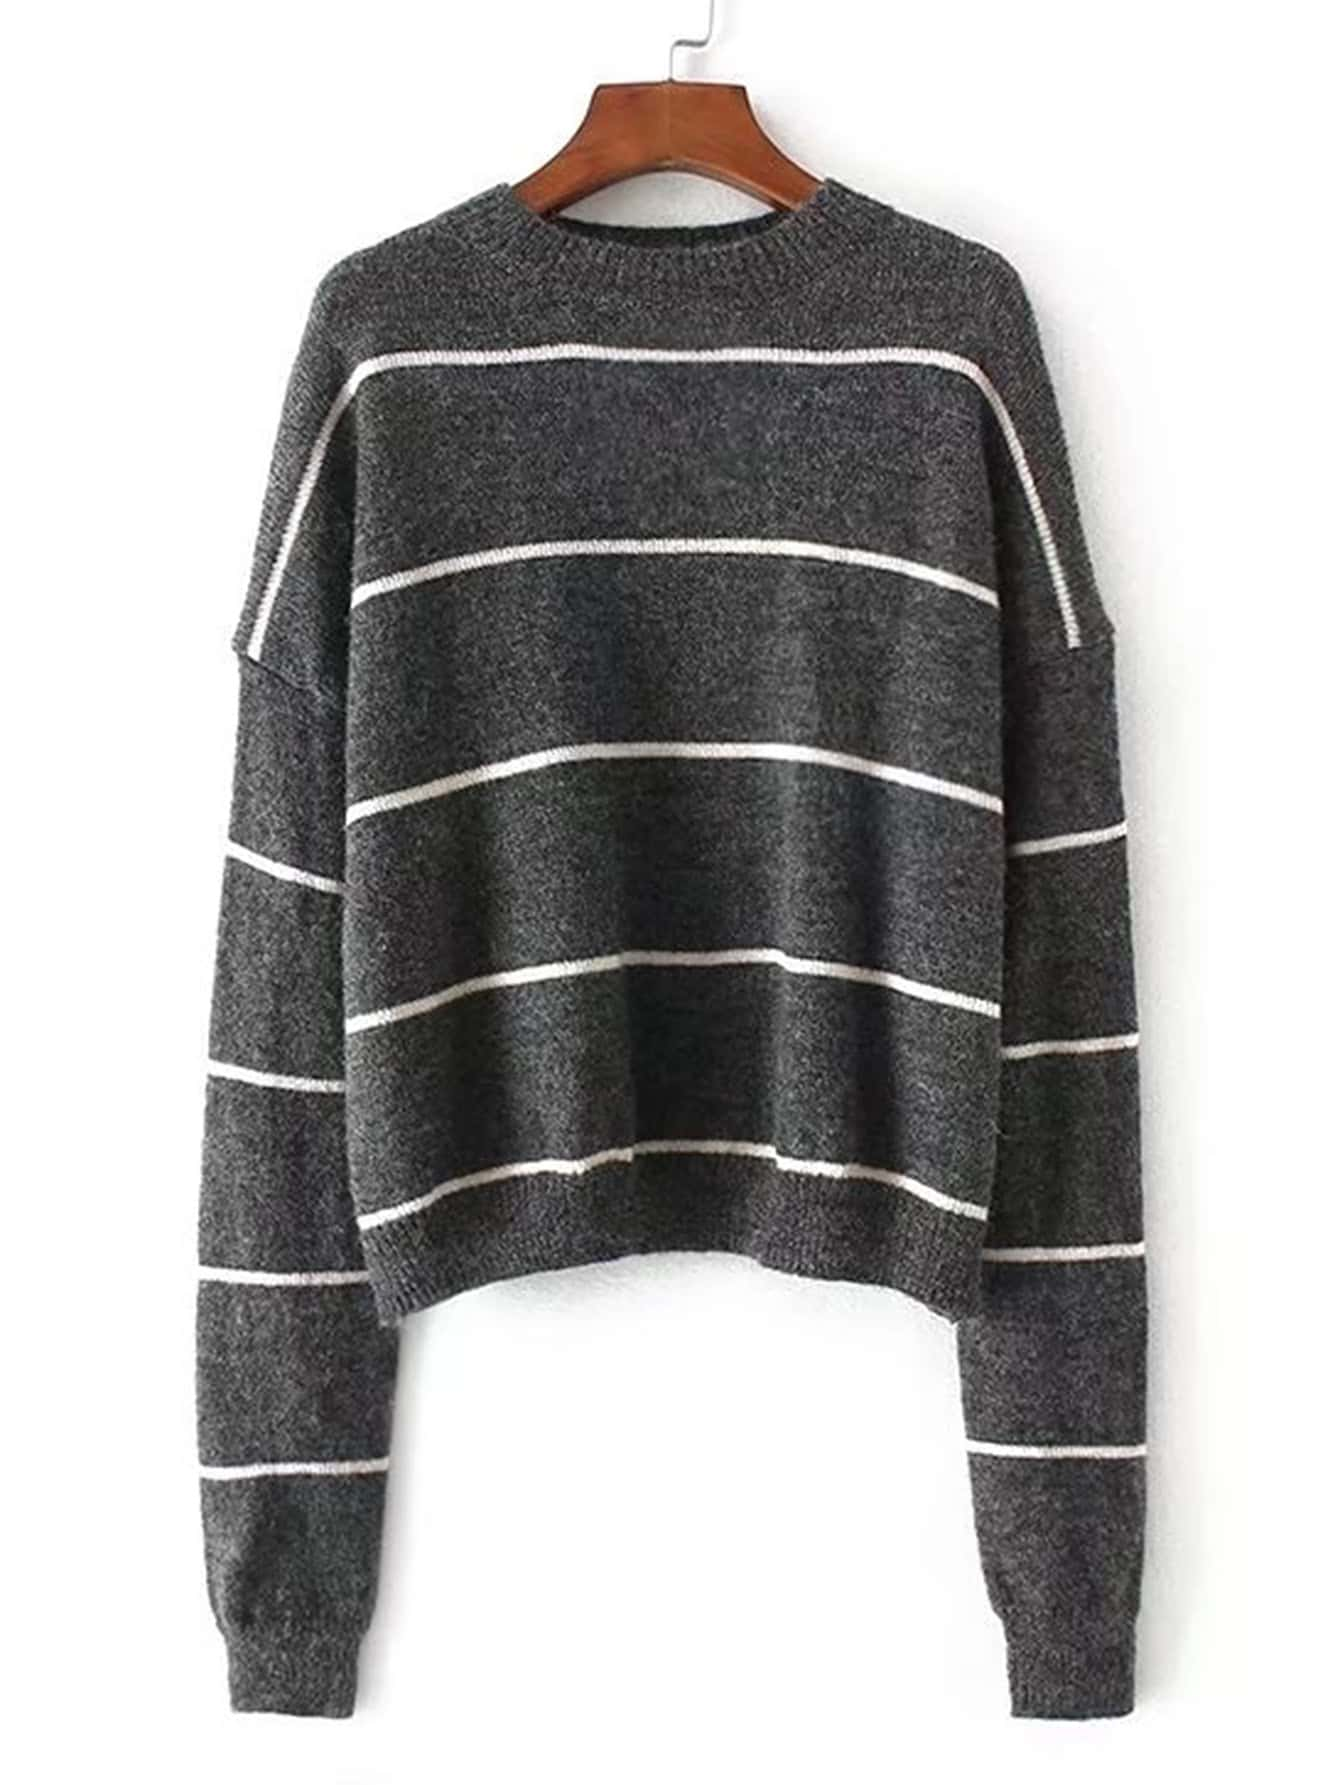 Drop Shoulder Striped Jumper Sweater RKNI170831202